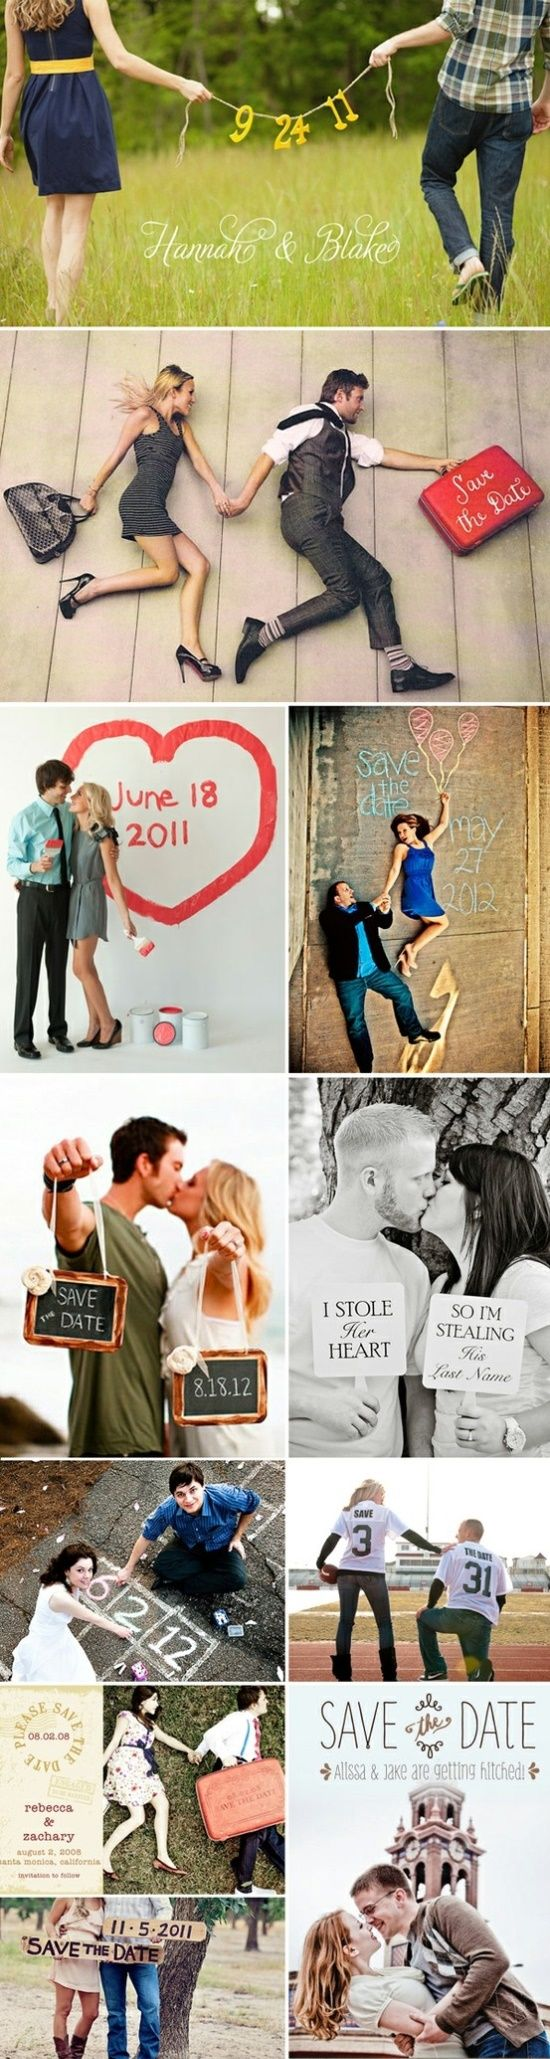 56 Save the Date Ideas                                                                                                                                                                                 More